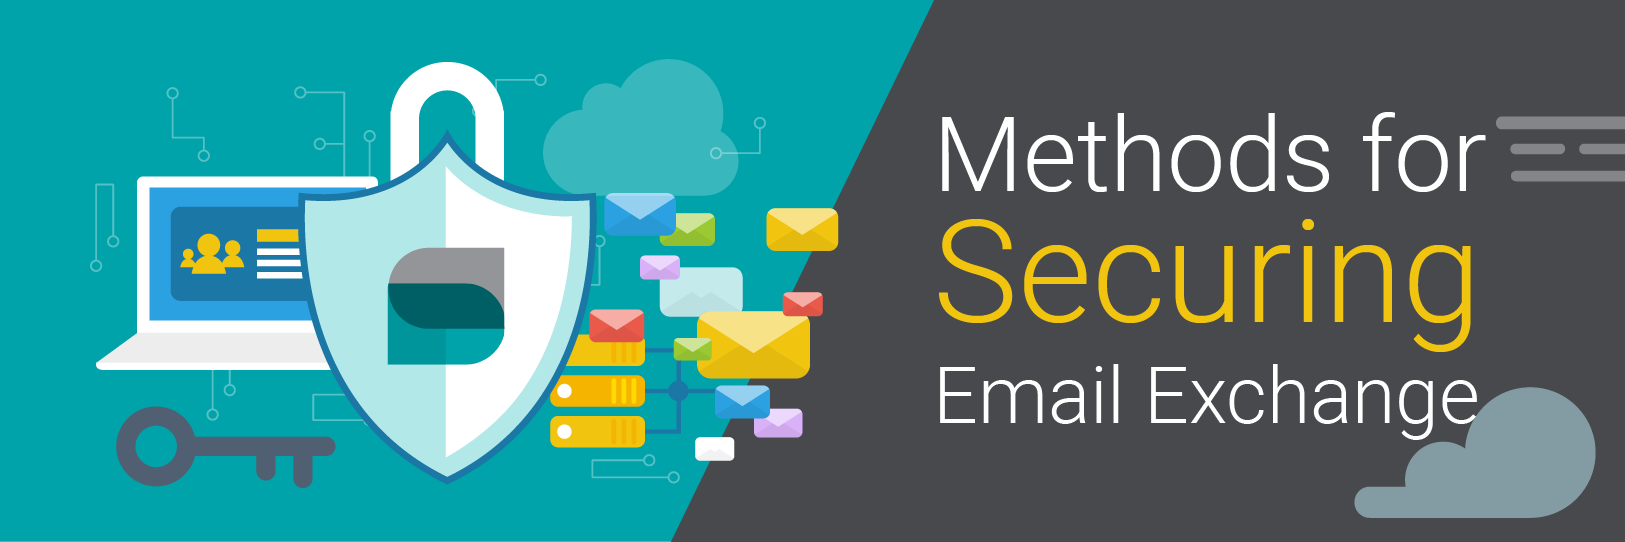 Methods for Securing Email Exchange